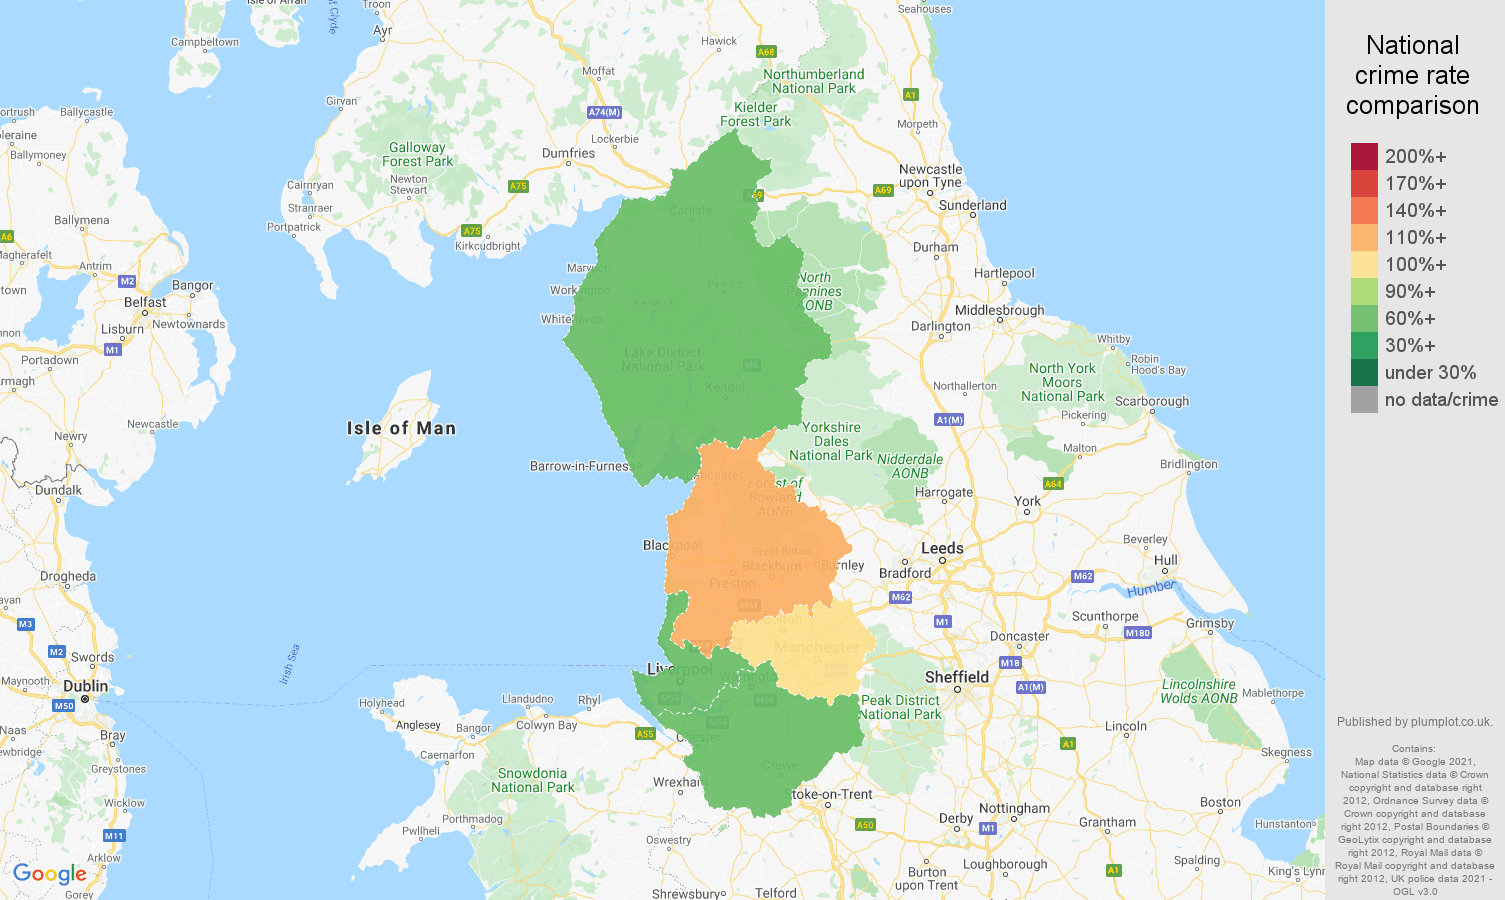 North West other theft crime rate comparison map